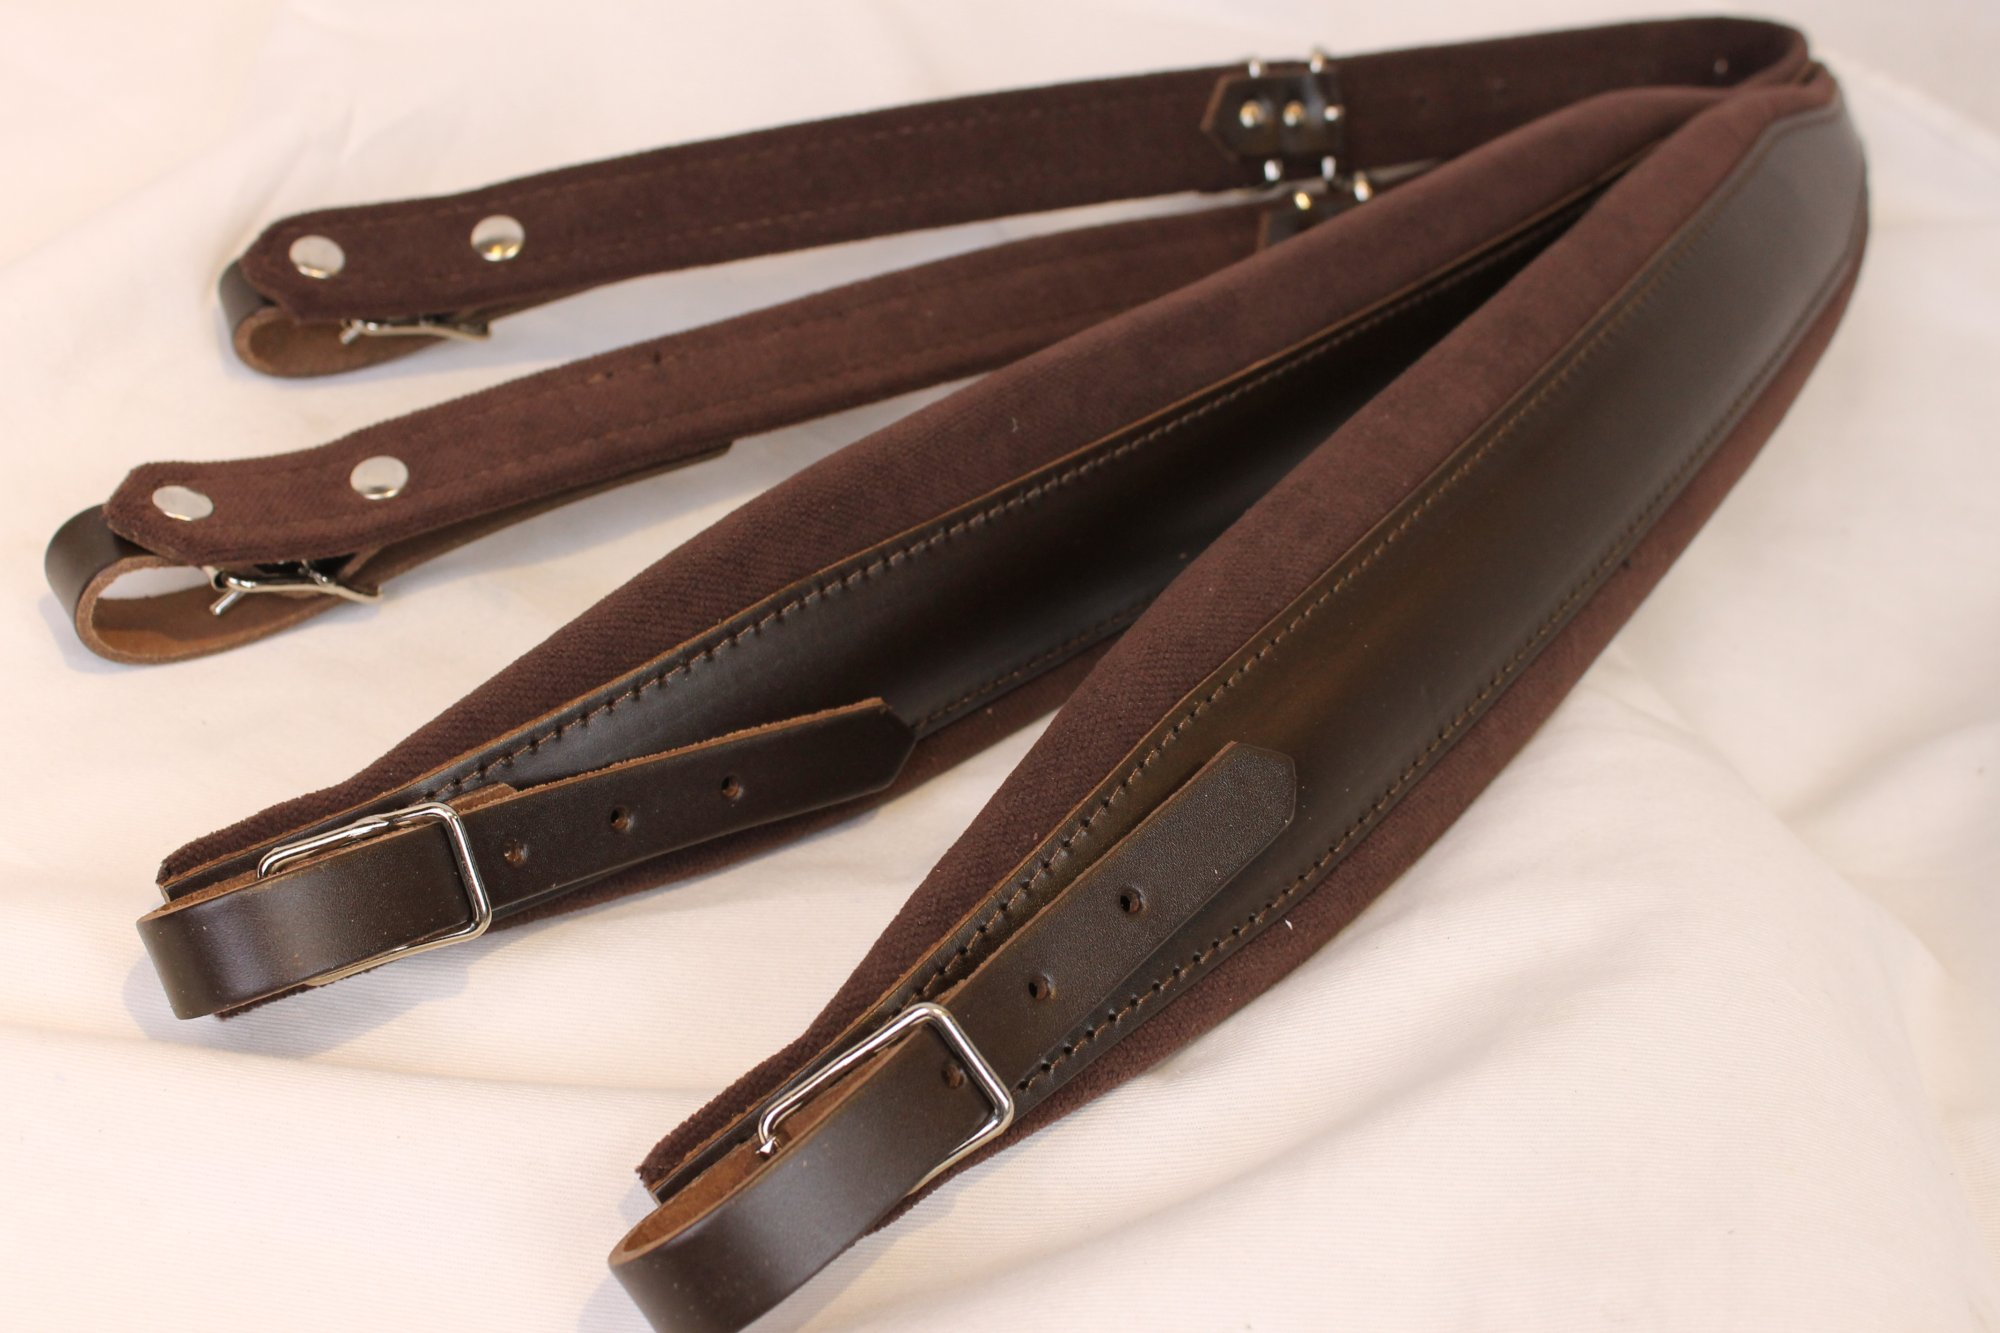 New Brown Leather Velour Fuselli Accordion Shoulder Straps Width (7cm / 2.8in) Length (85~105cm / 33.5~41.3in)